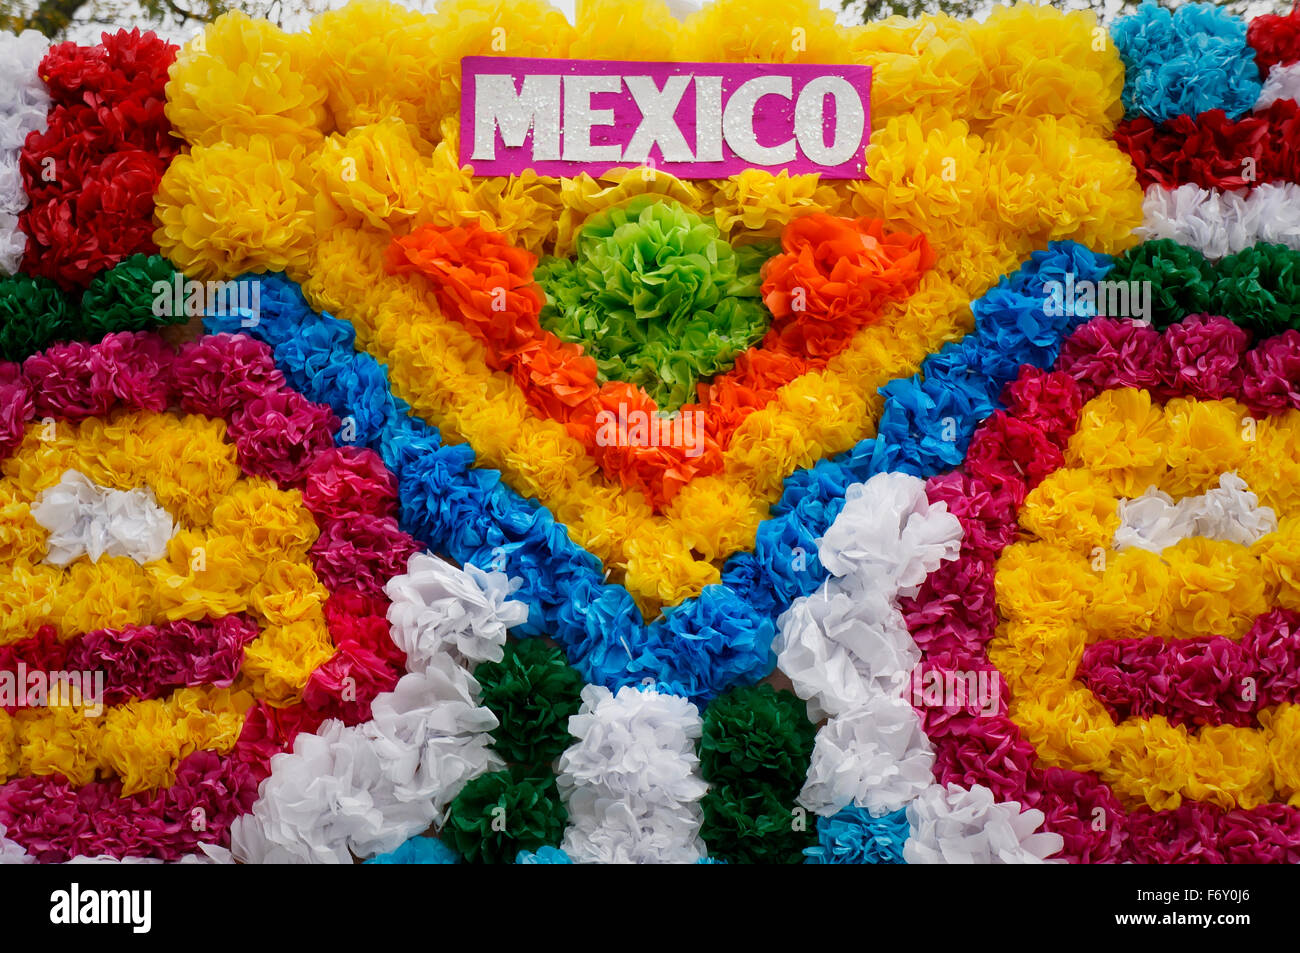 crepe paper flowers on mexican parade float stock photo 90332990